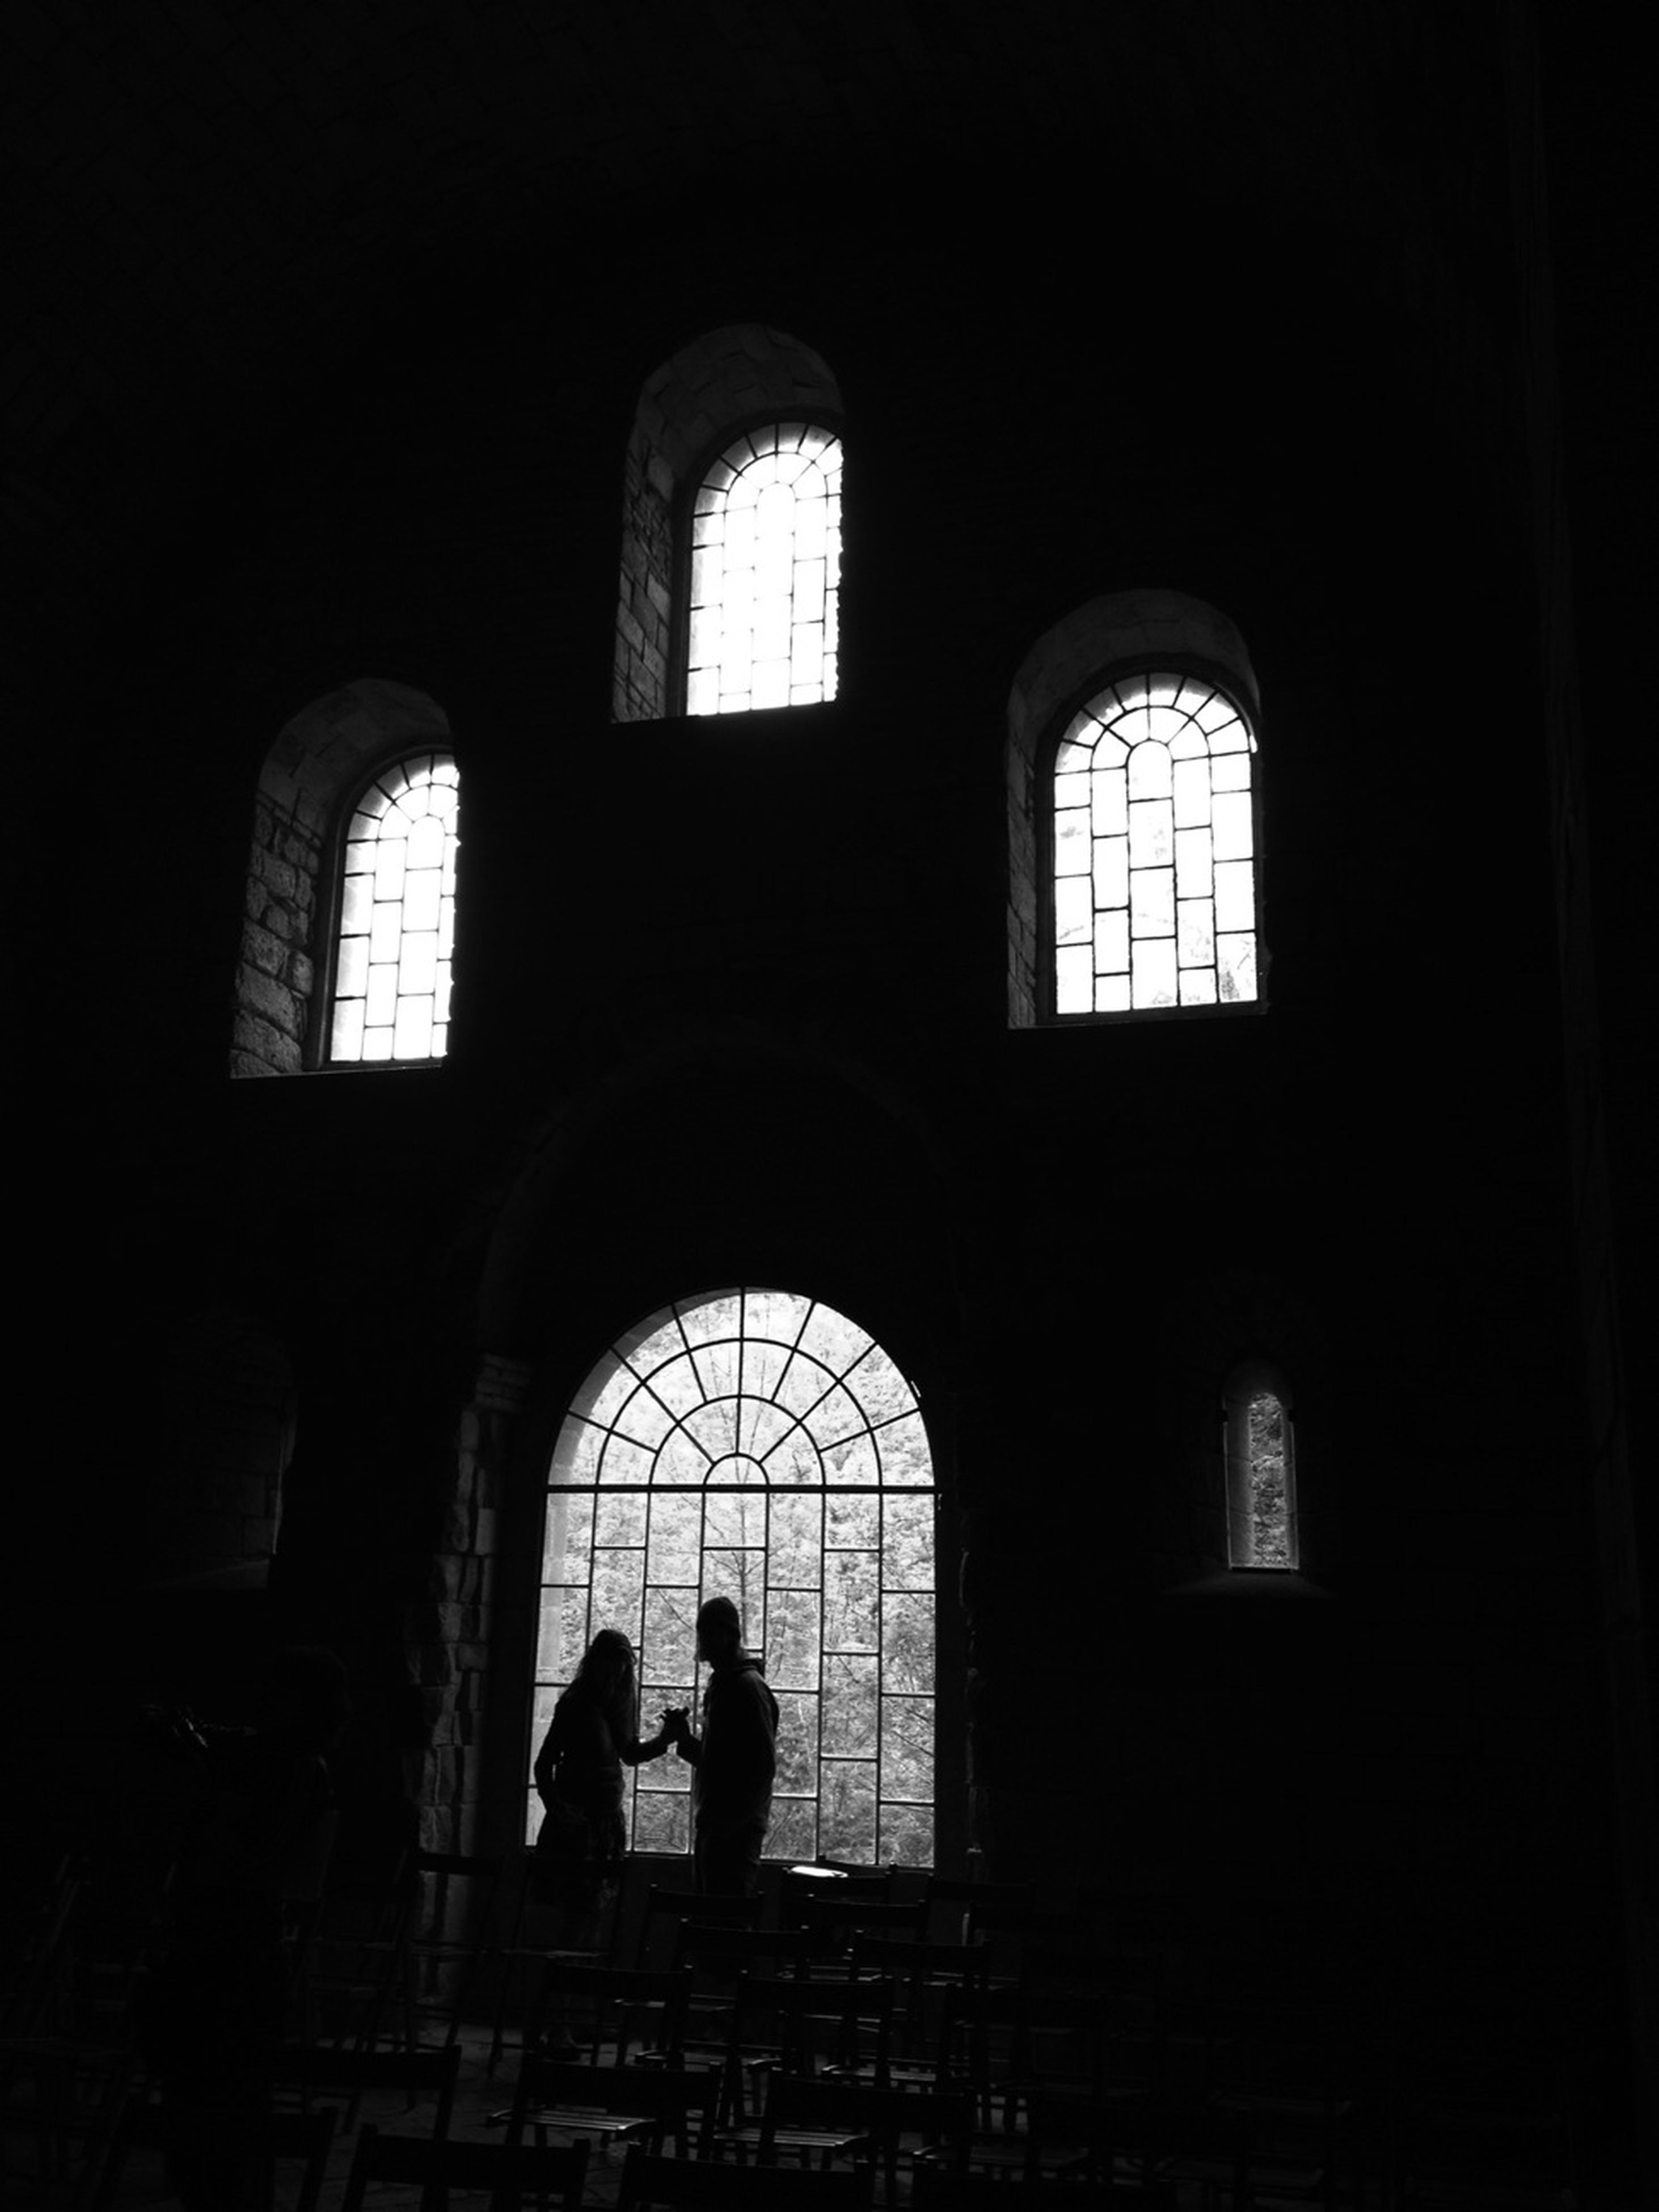 arch, indoors, window, architecture, silhouette, built structure, lifestyles, men, dark, leisure activity, person, standing, entrance, full length, unrecognizable person, archway, rear view